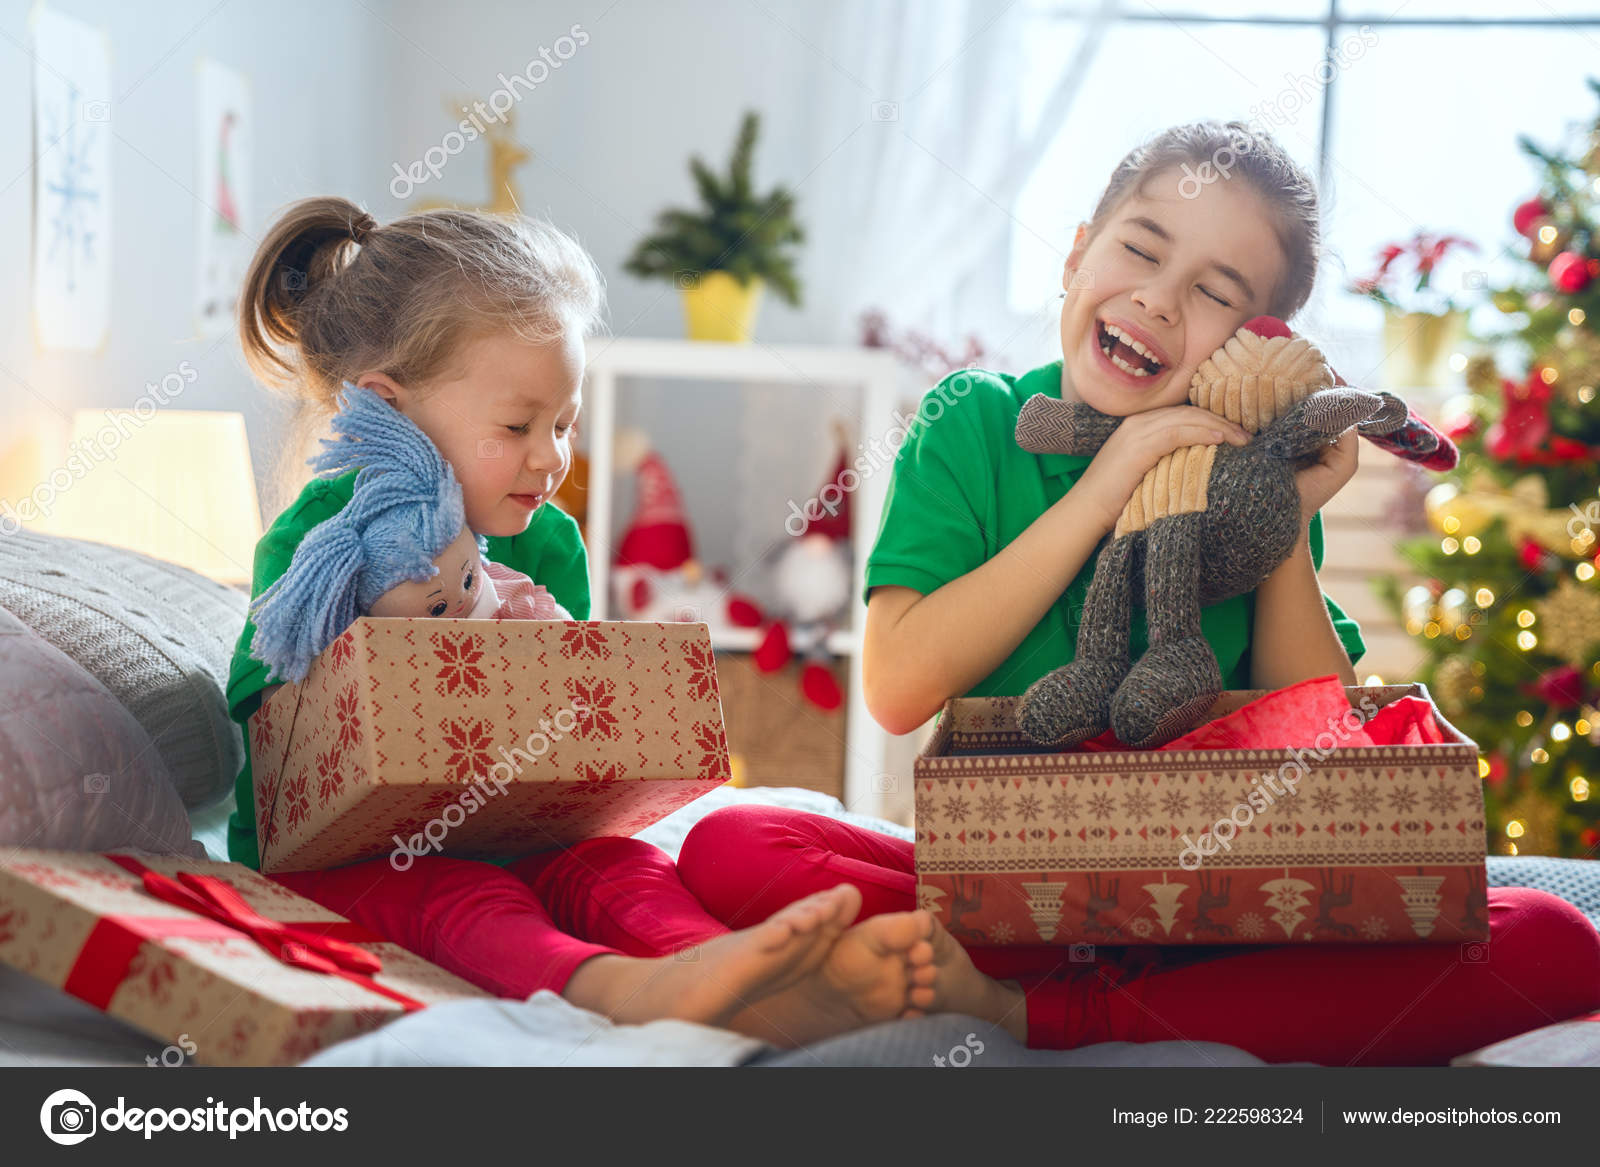 Merry Christmas Happy Holidays Cheerful Cute Childrens Girls Opening ...